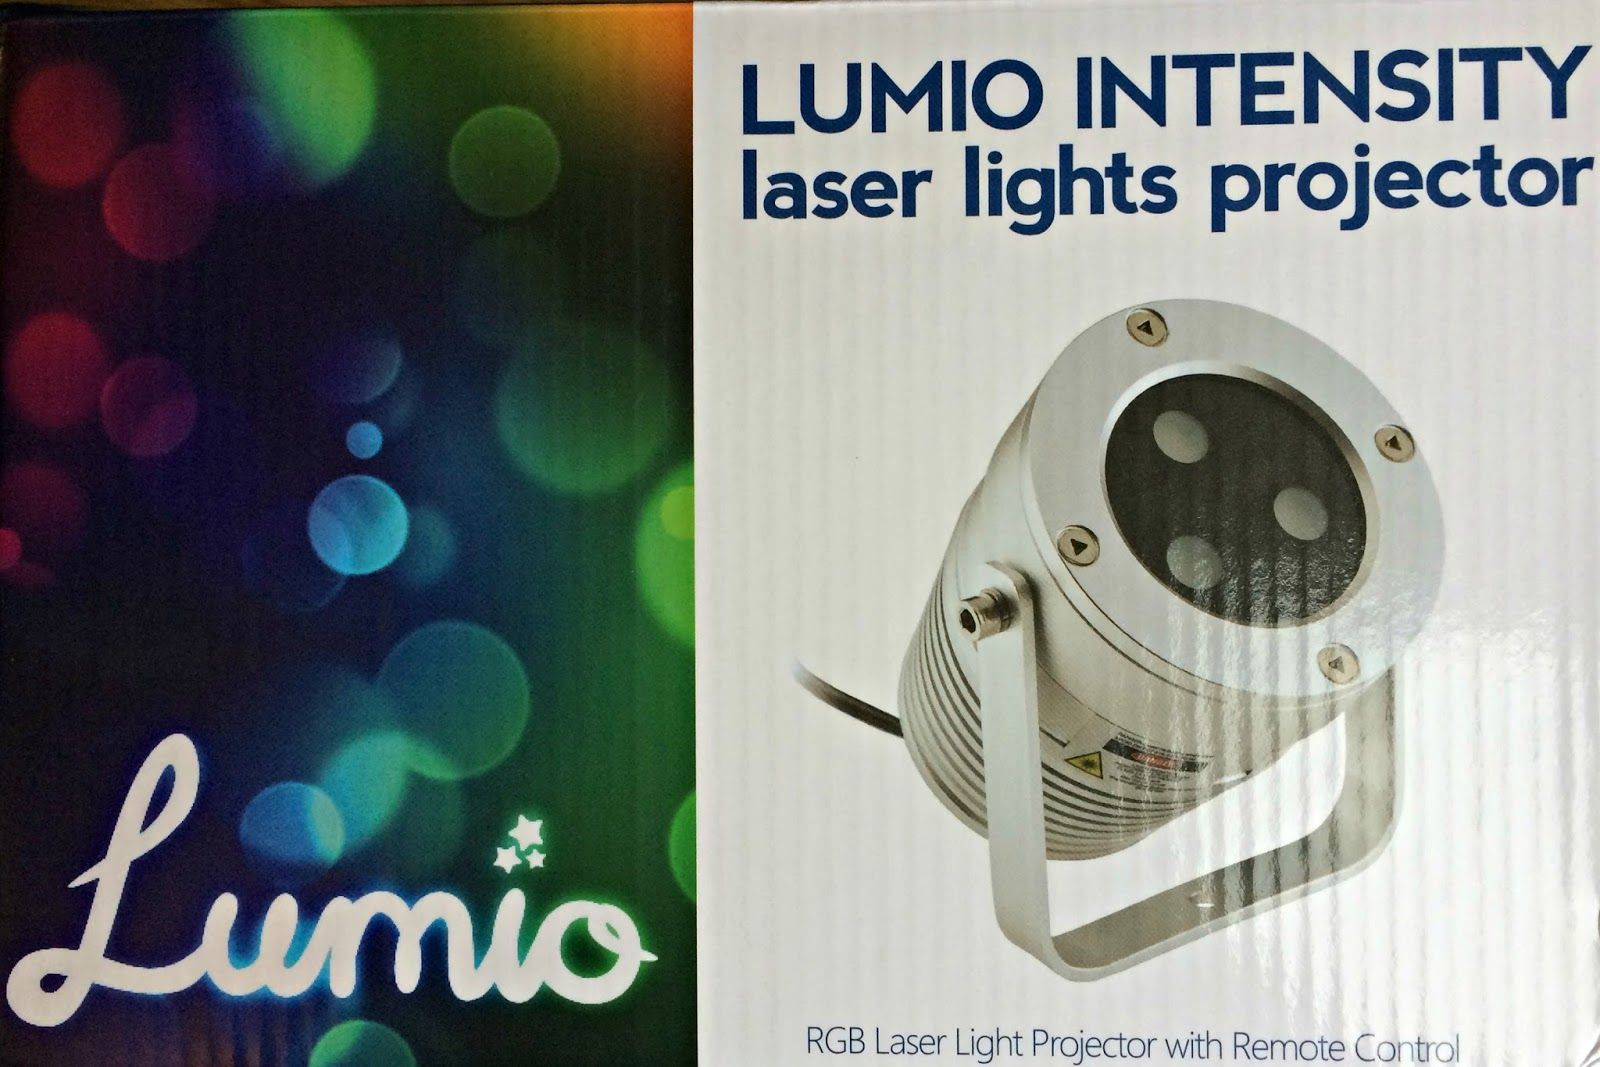 Review Lumio Intensity Laser Lights Projector From